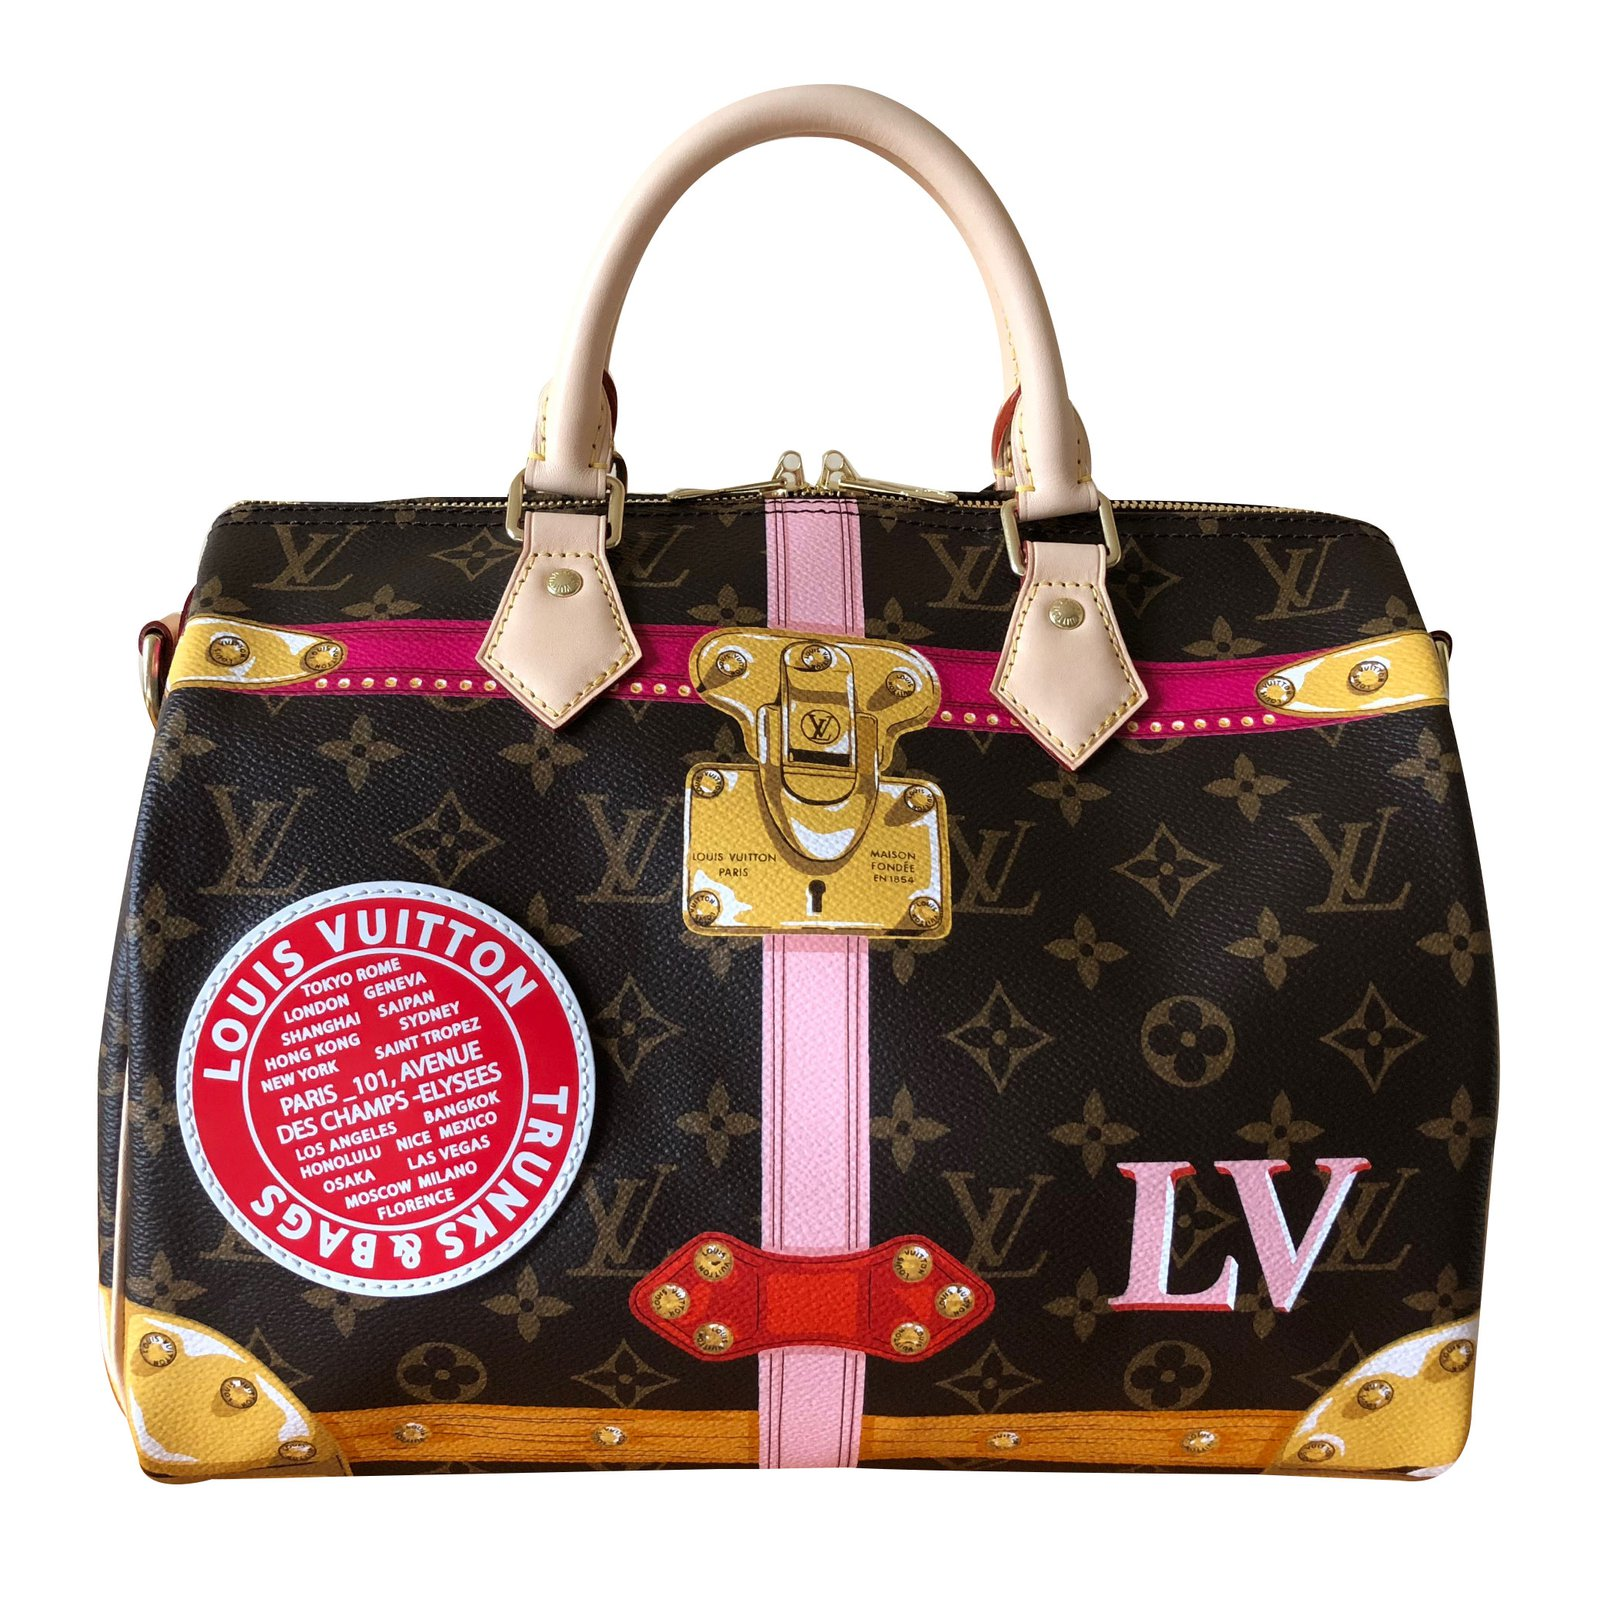 f770aaf46dd0a8 Louis Vuitton Speedy Shoulder Strap 30 Handbags Cloth Multiple colors  ref.86661